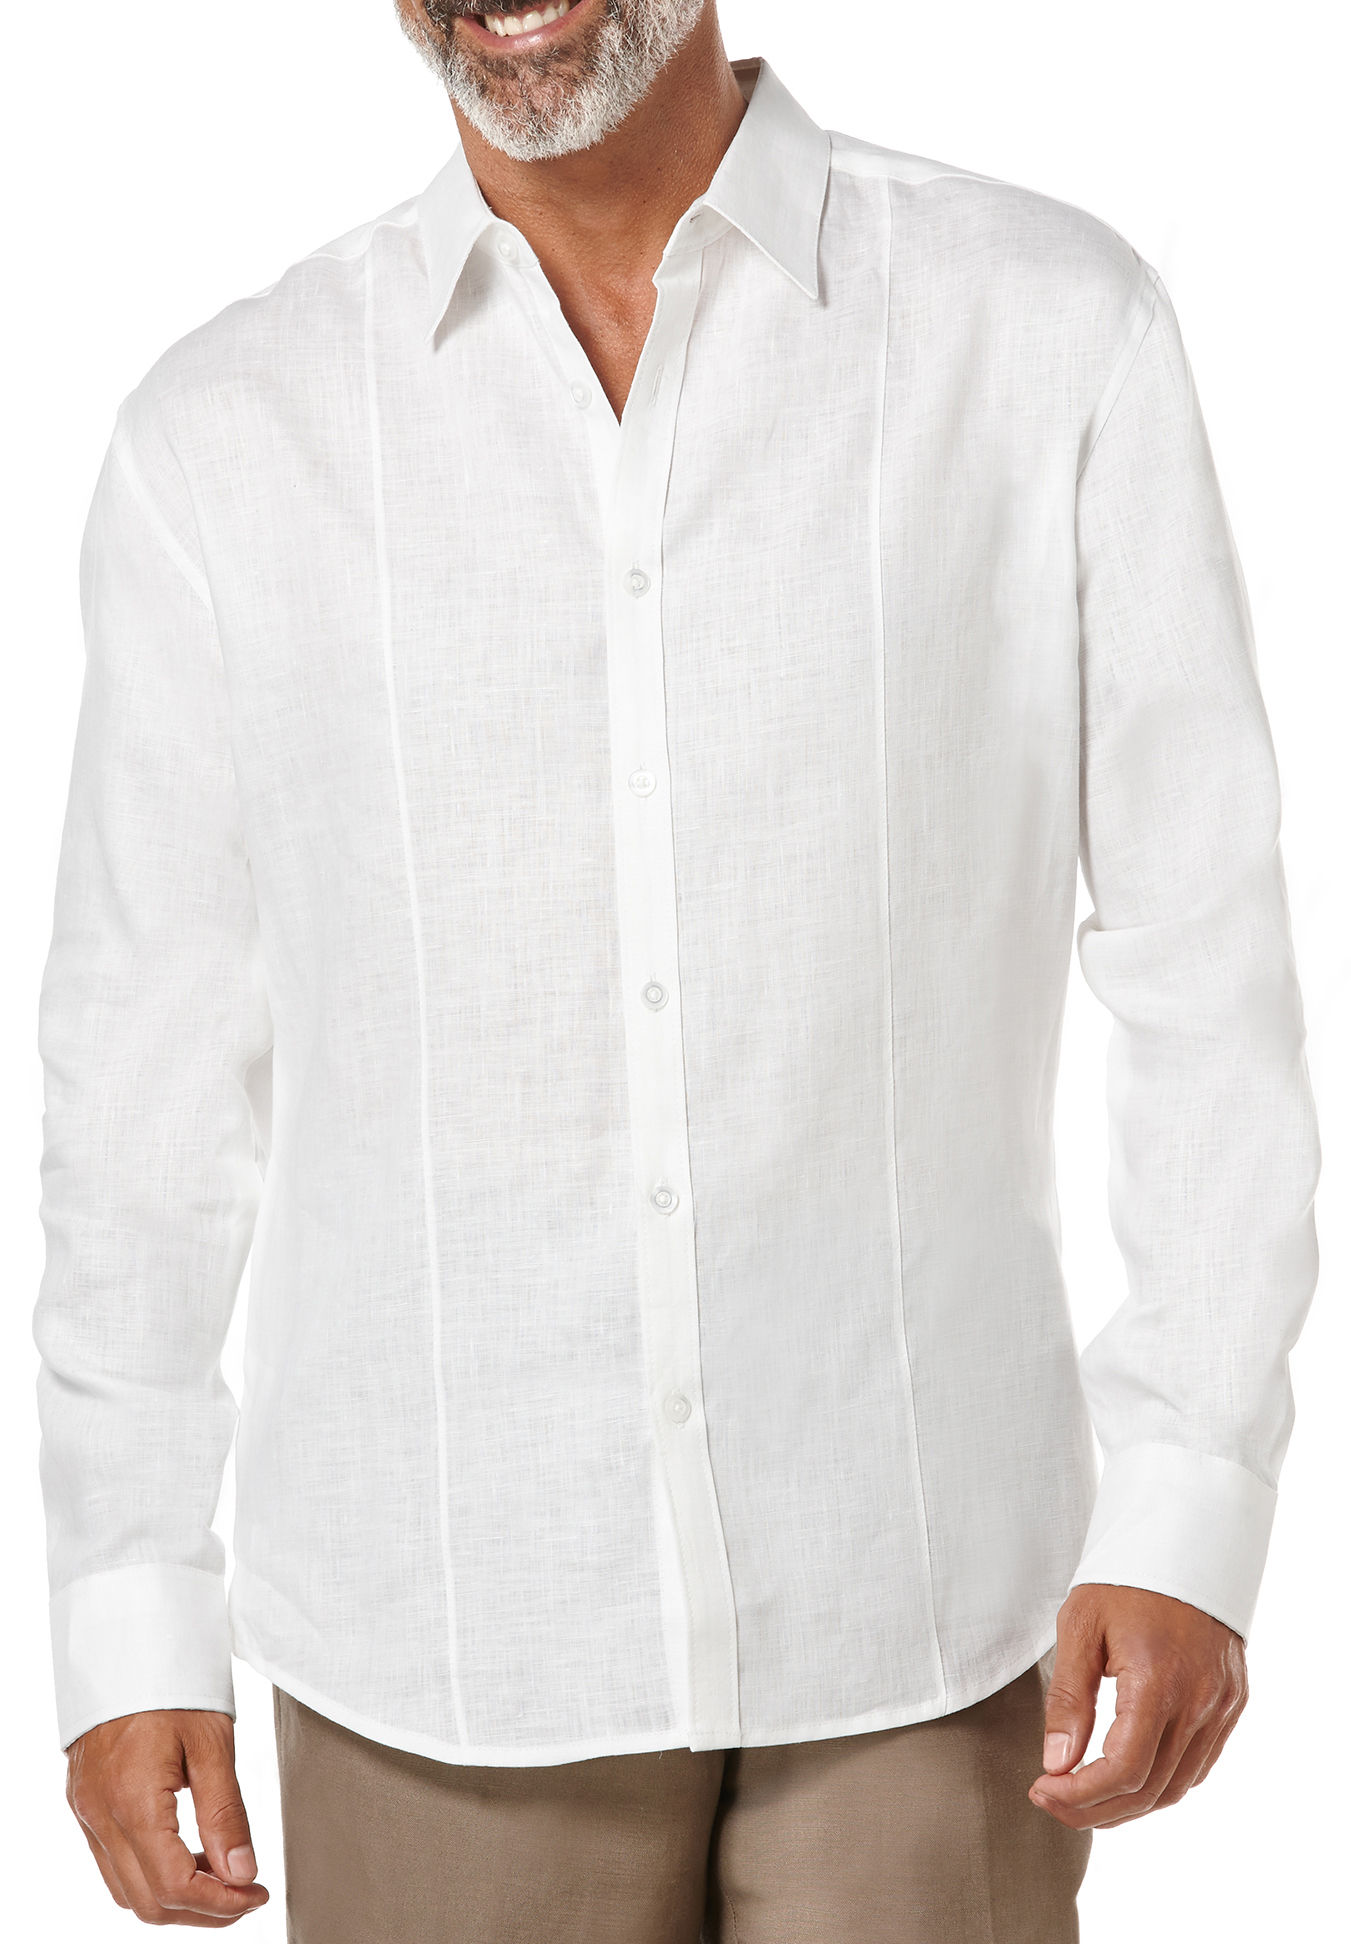 Free shipping and returns on Men's Linen Shirts at trickytrydown2.tk Skip navigation. Short Sleeve Long Sleeve. Show Feature. Breathable Moisture Wicking Quick Dry Reversible Smartcare Stretch Tech-Smart Wrinkle Resistant. Men's Linen Shirts. Get It Fast: Set location off. 69 items.